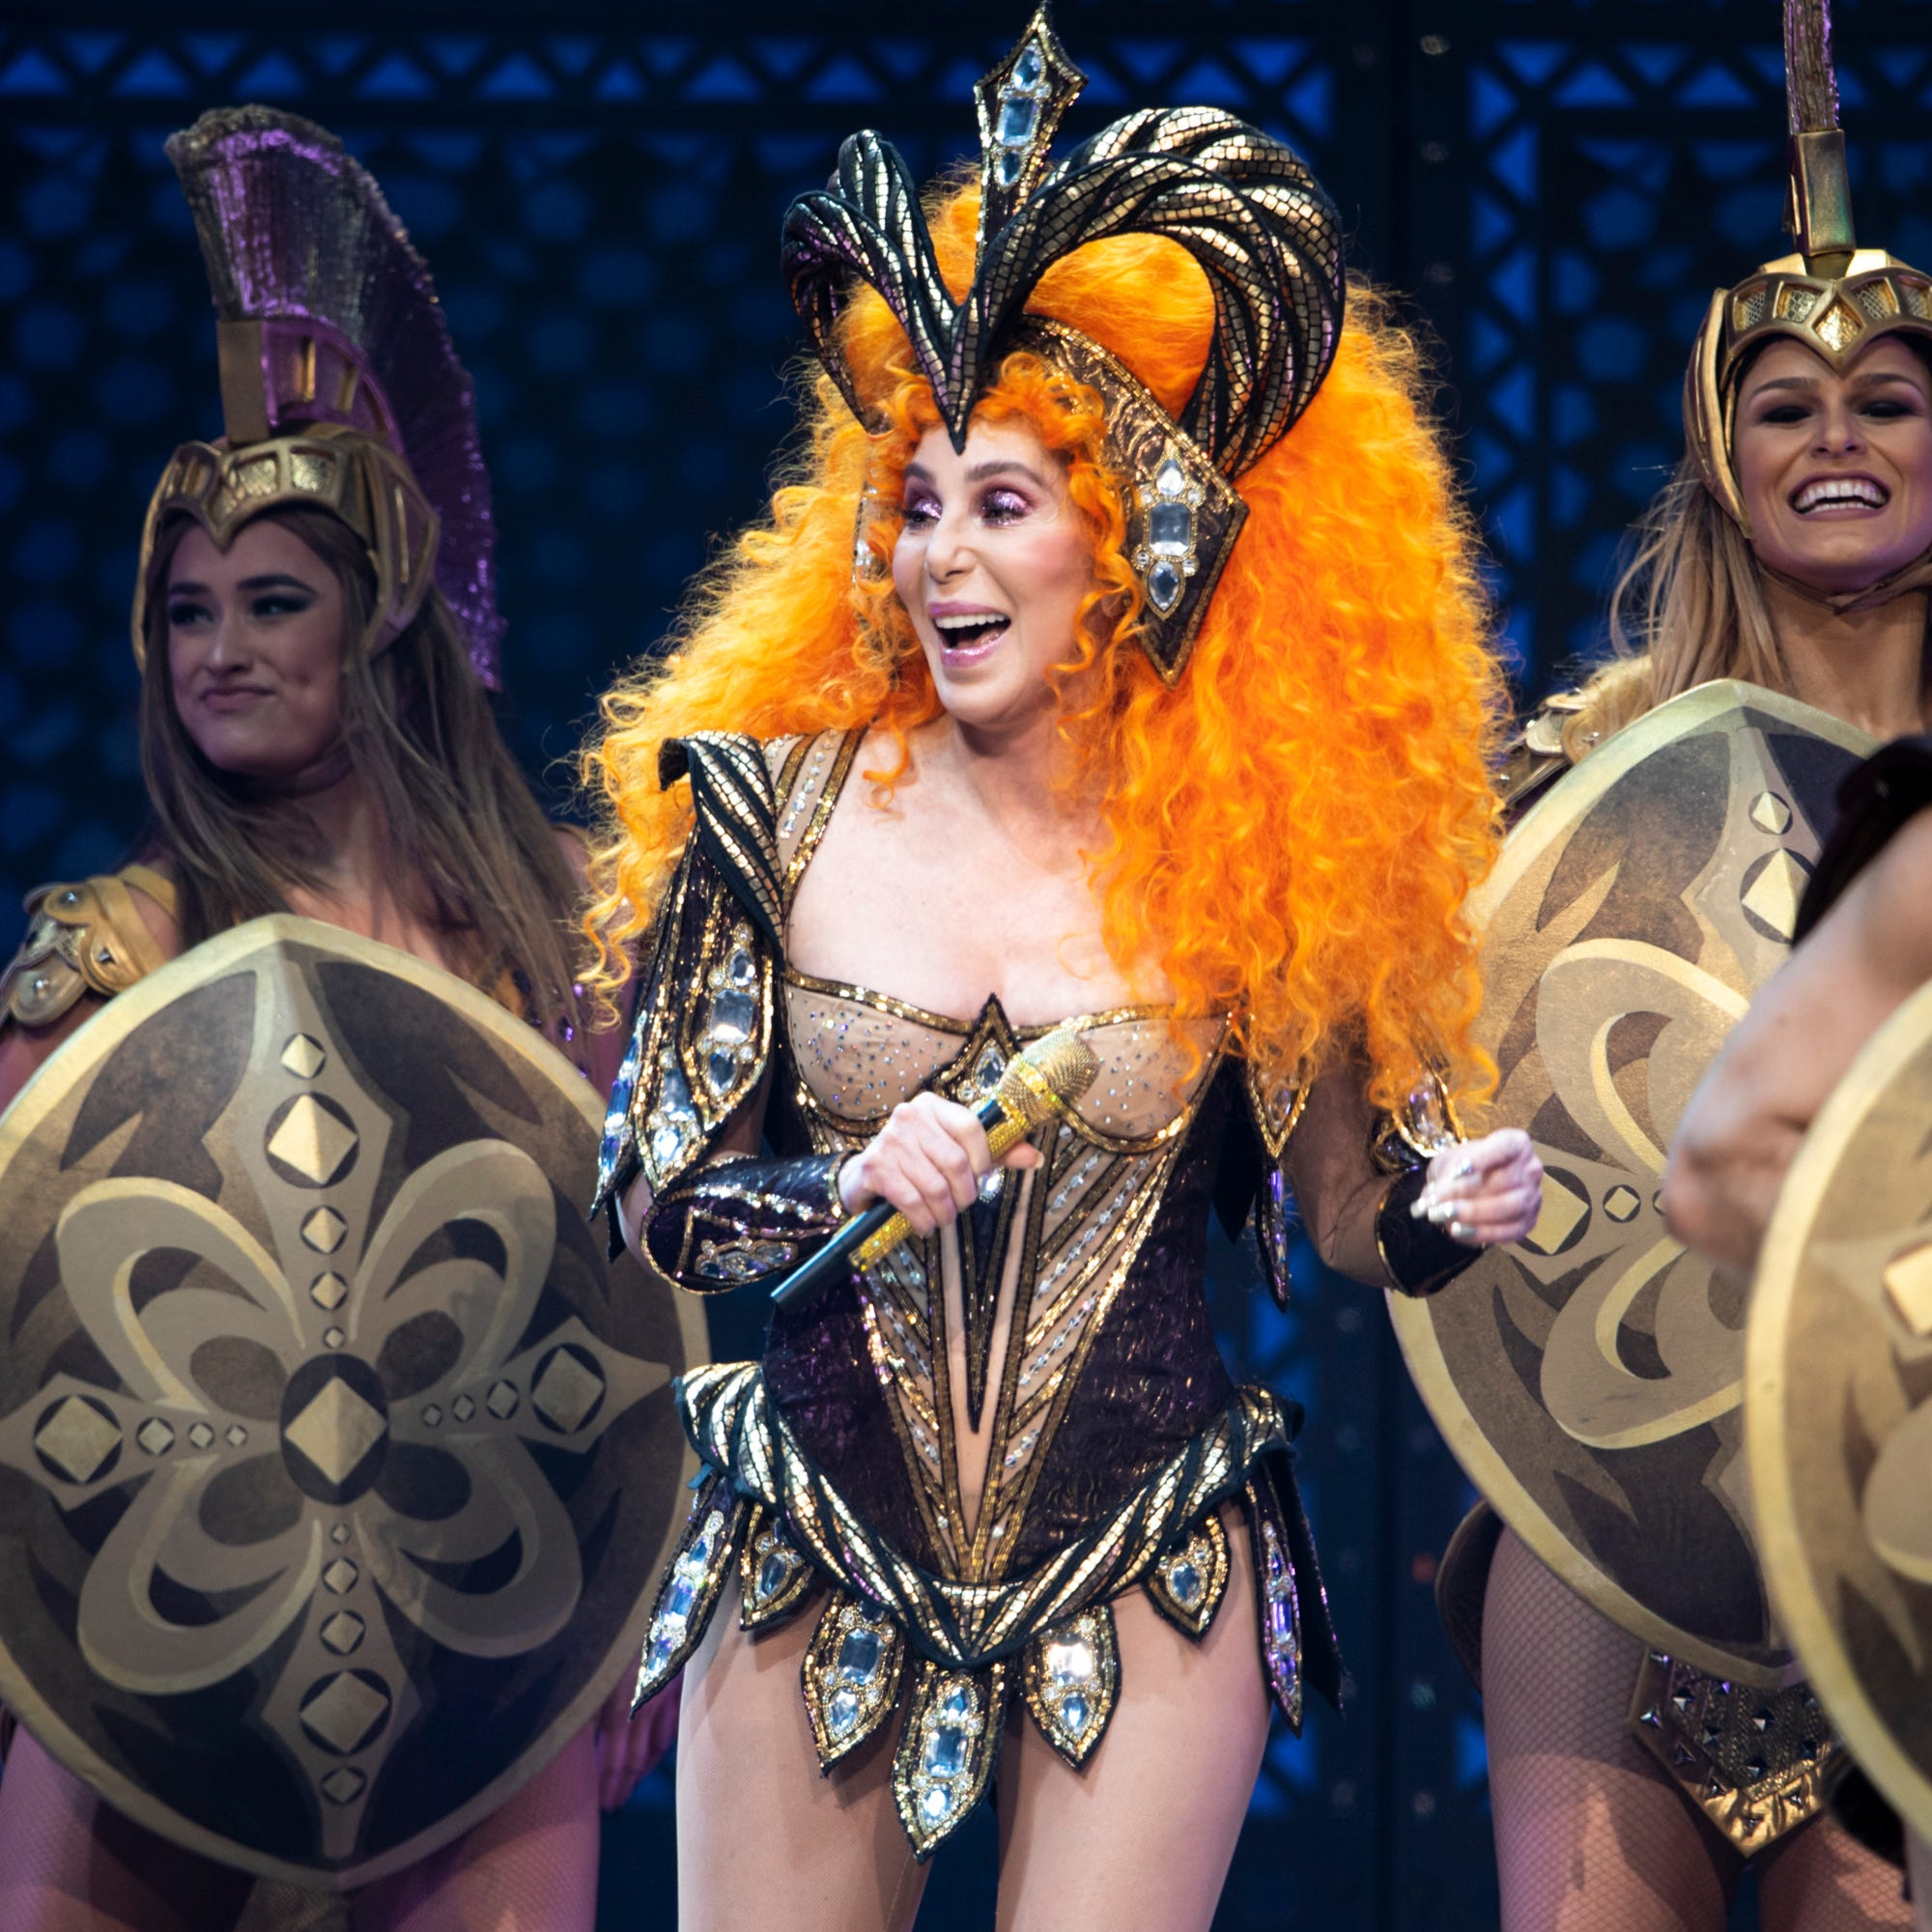 Cher tour 2019: Setlist, review & a second chance to see her in Philly